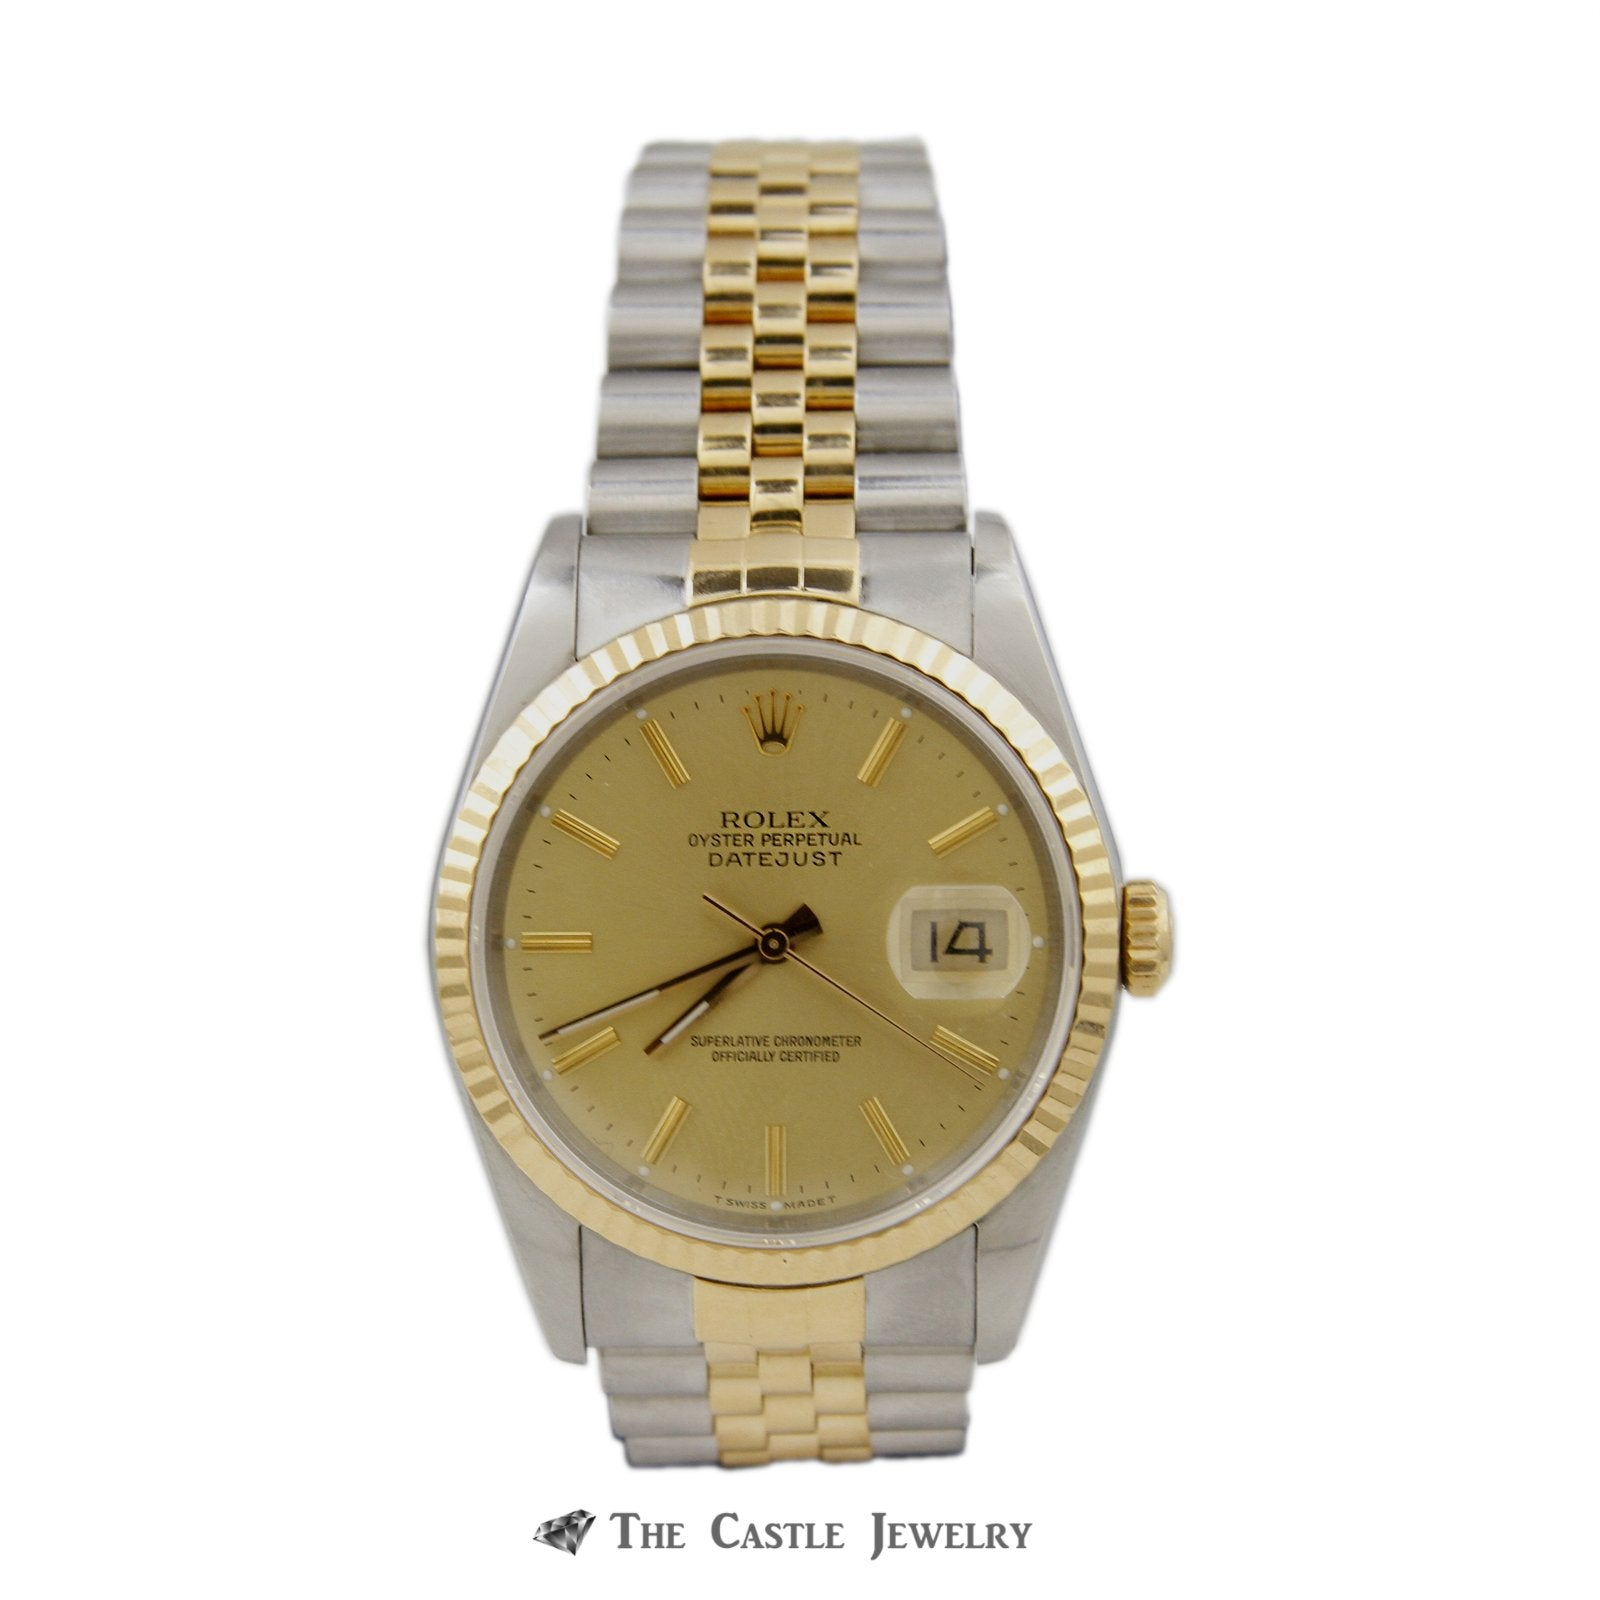 Rolex Datejust 36mm Watch 18K/Steel Gold Dial Fluted Bezel 16233 BARELY WORN-0